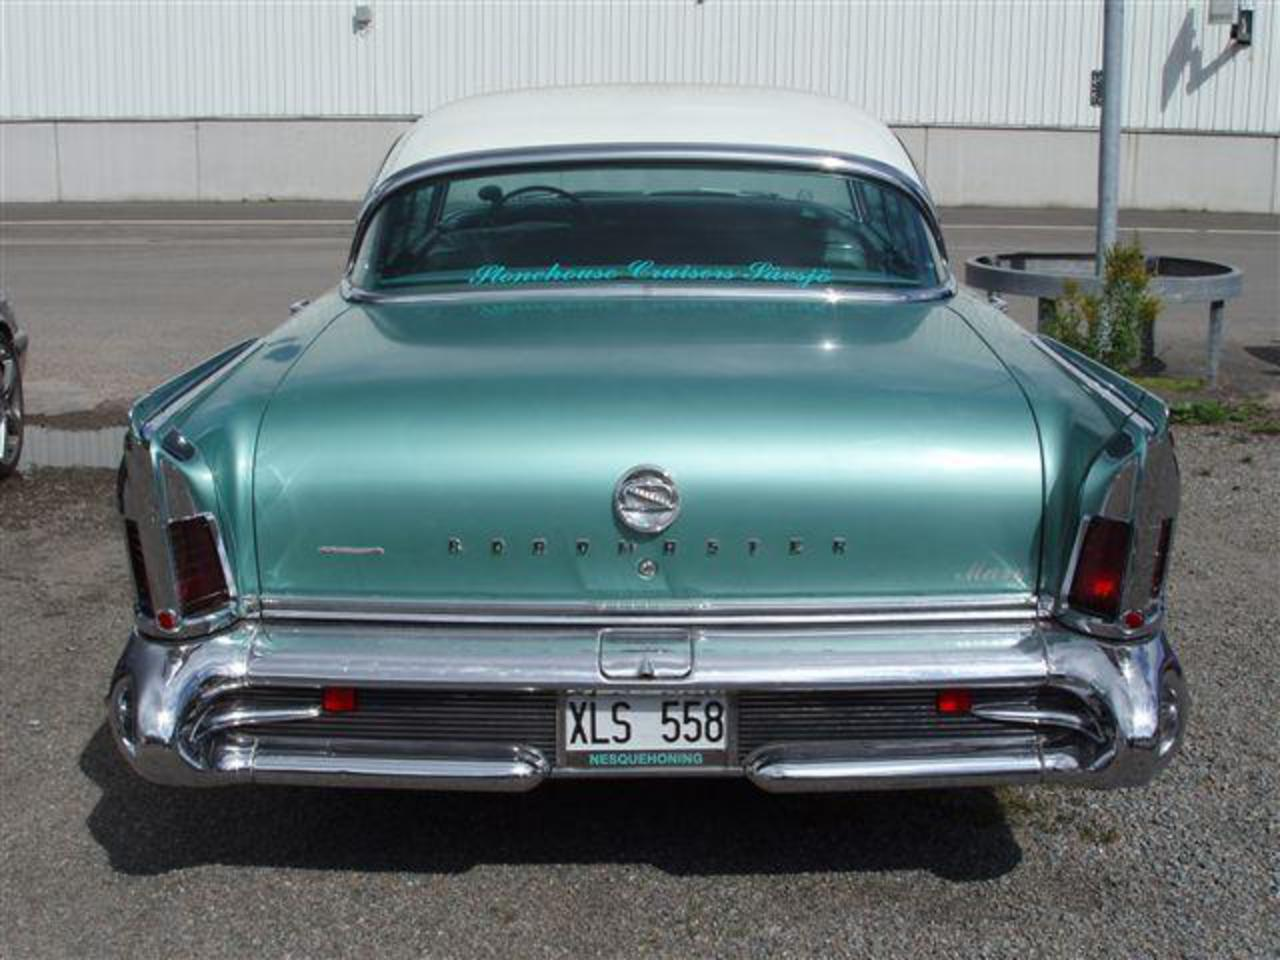 Buick Roadmaster 4dr HT - cars catalog, specs, features, photos, videos,